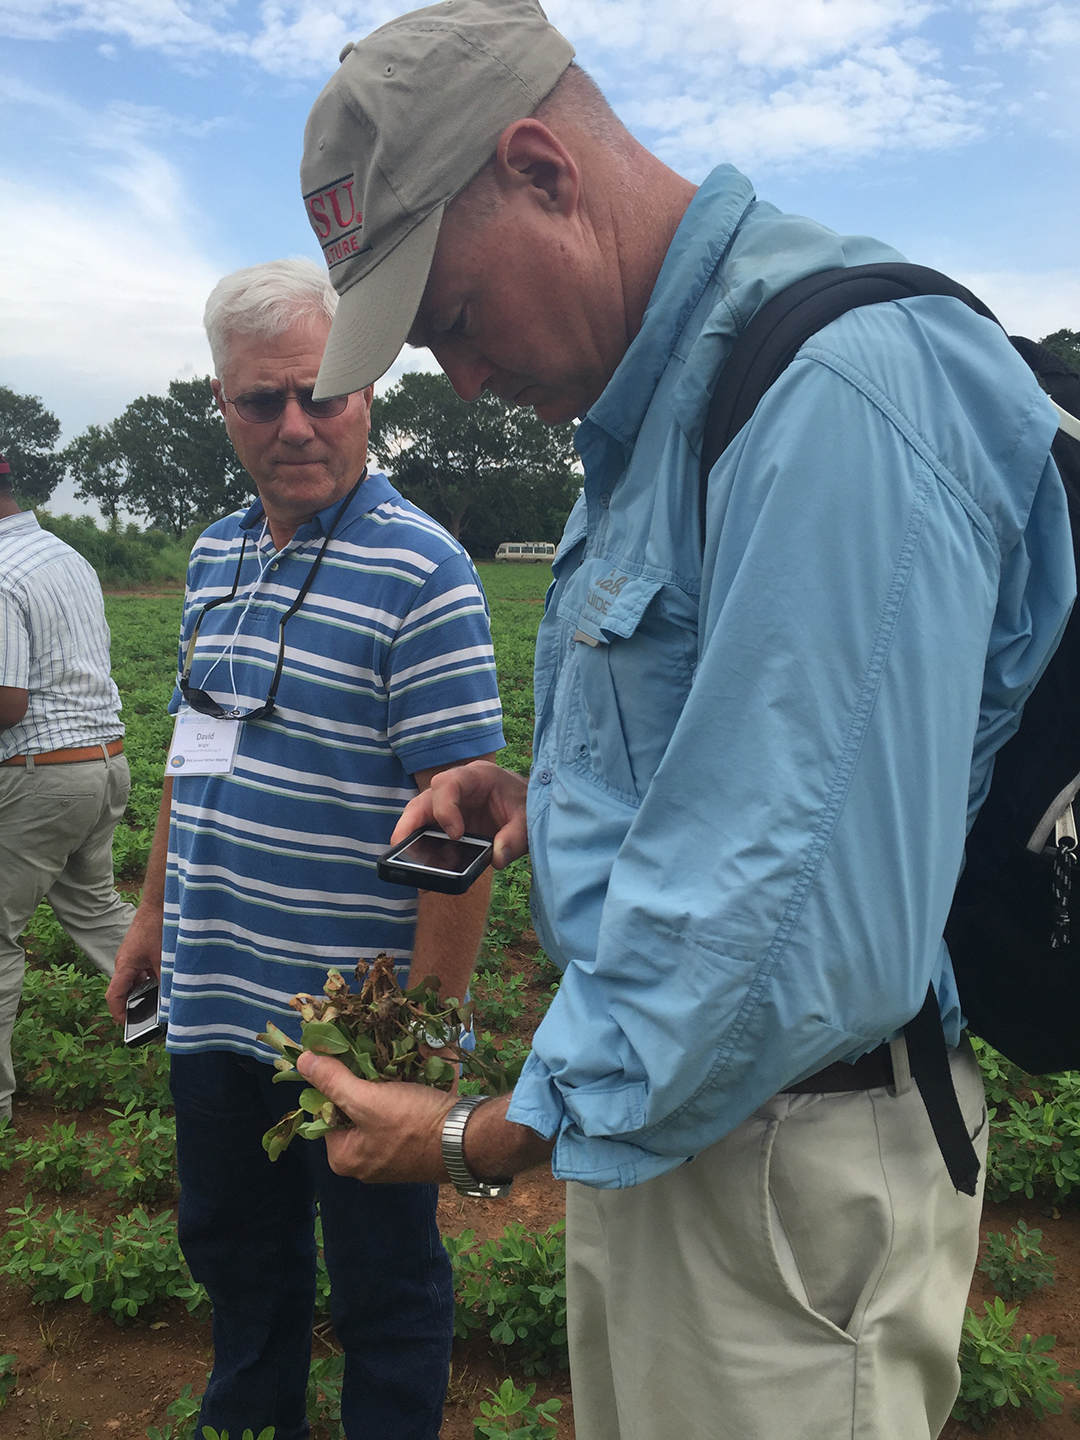 David Jordan, a crop science professor at North Carolina State University, is lead scientist on a project through the Peanut Innovation Lab at the University of Georgia to update a risk assessment tool for farmers in North Carolina and overseas partners. (Photo by Allison Floyd)